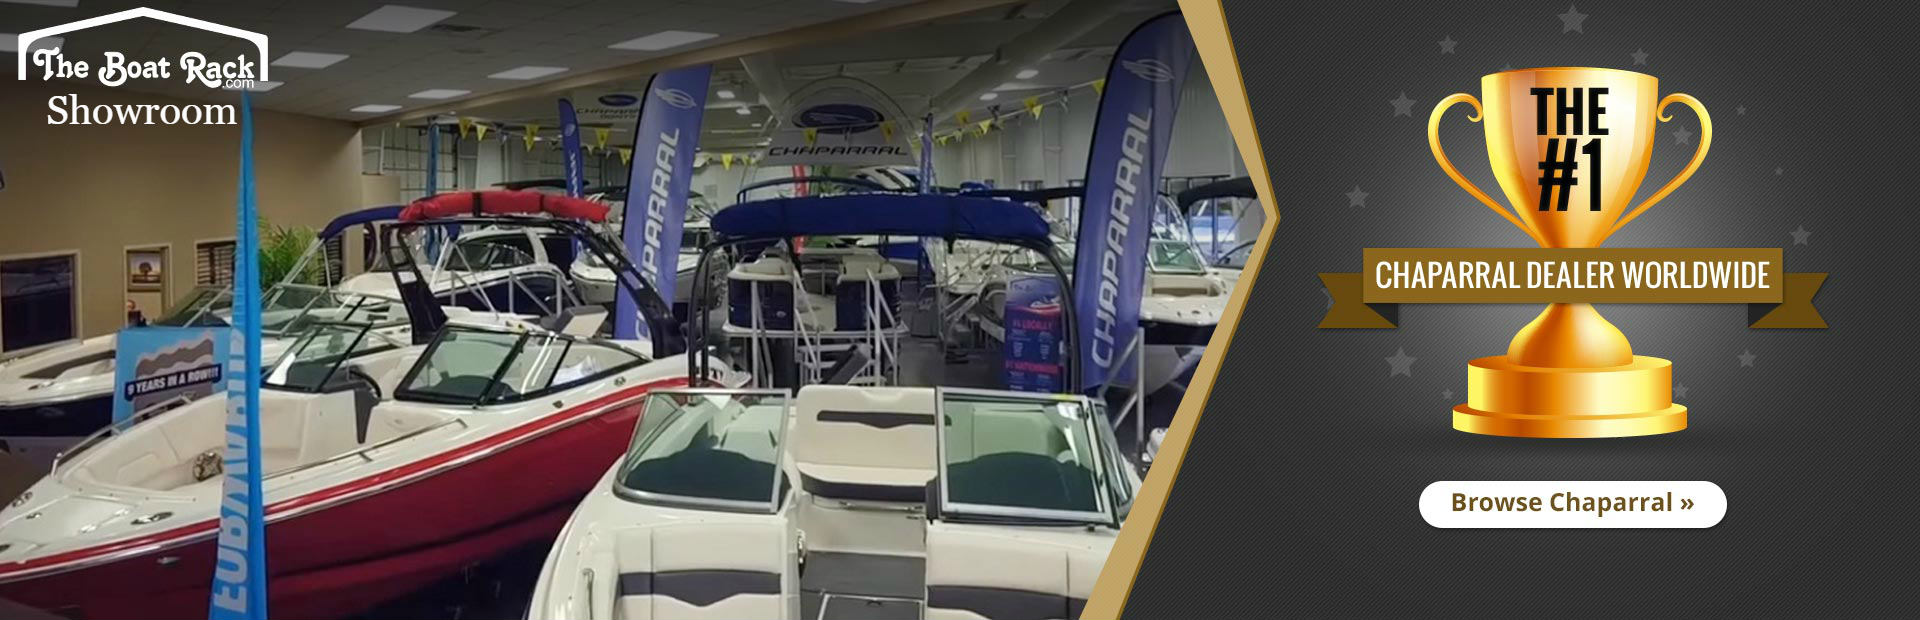 The Boat Rack is the #1 Chaparral dealer worldwide!